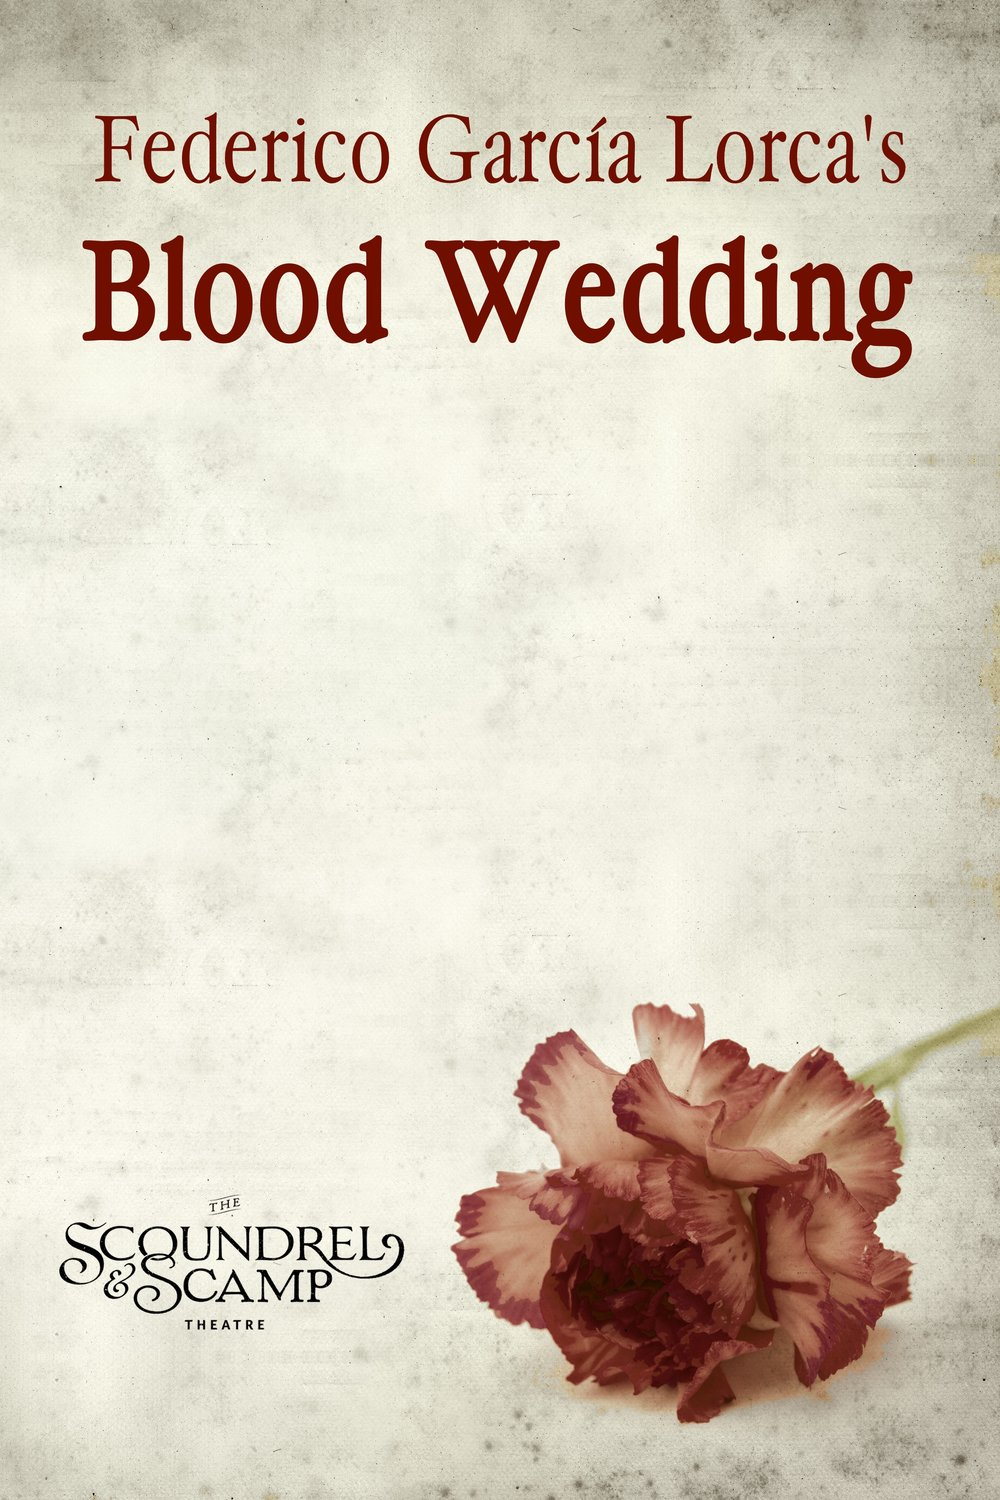 Blood Wedding.jpg